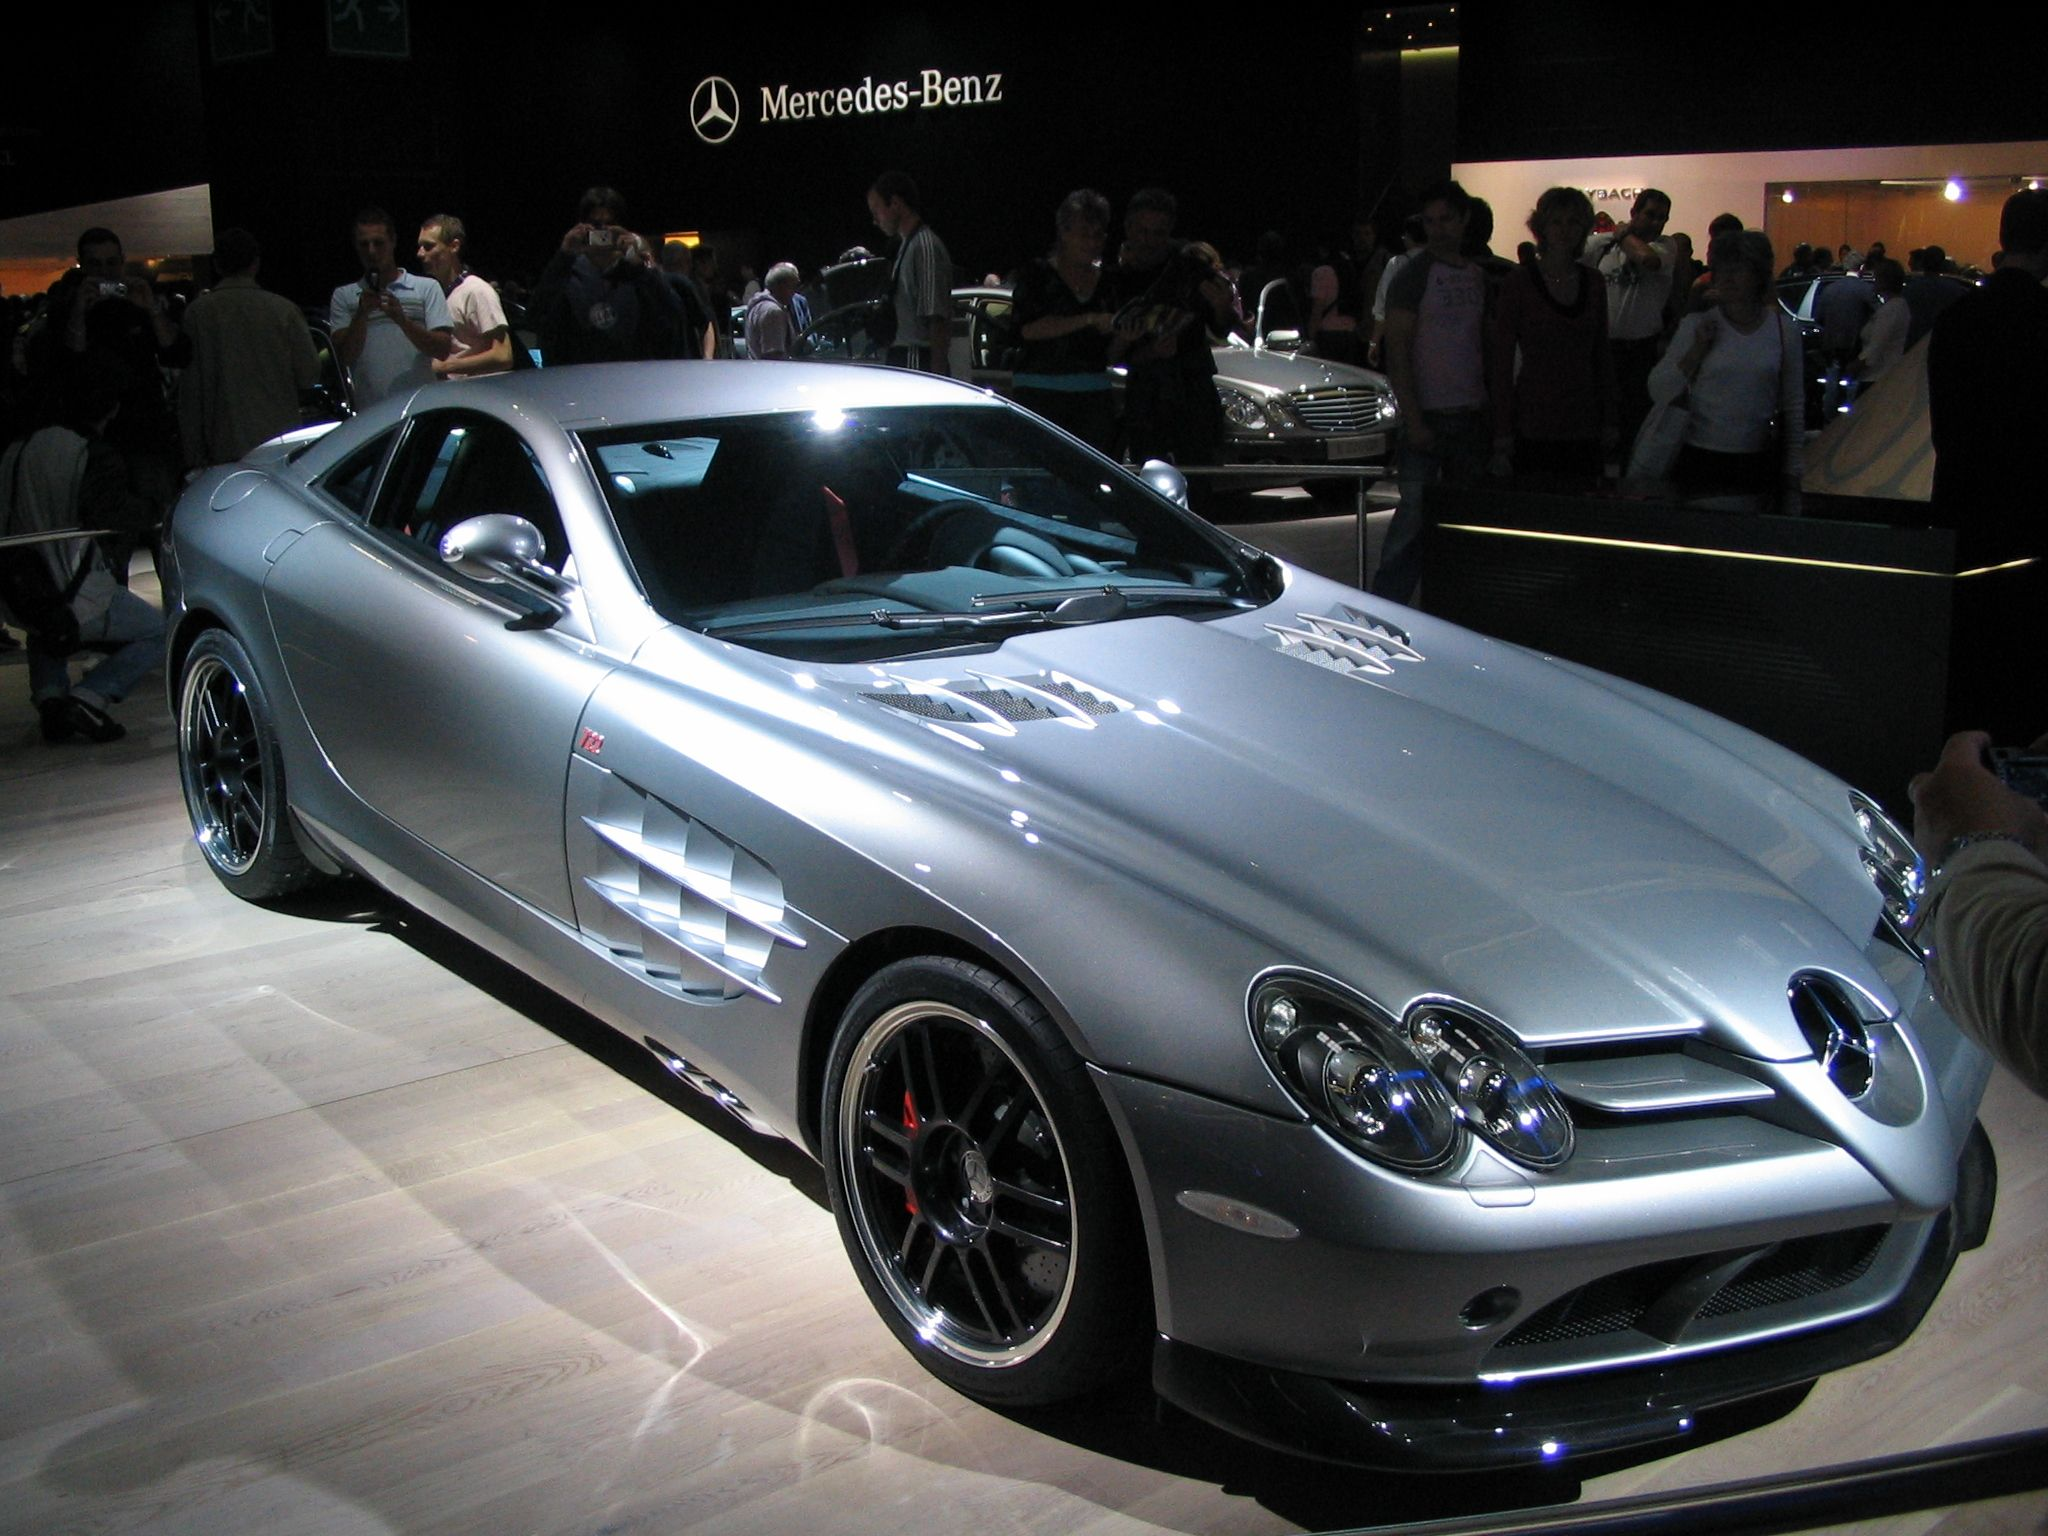 Mercedes Benz Slr 722 Edition Paris Car Show 2006 Car Show